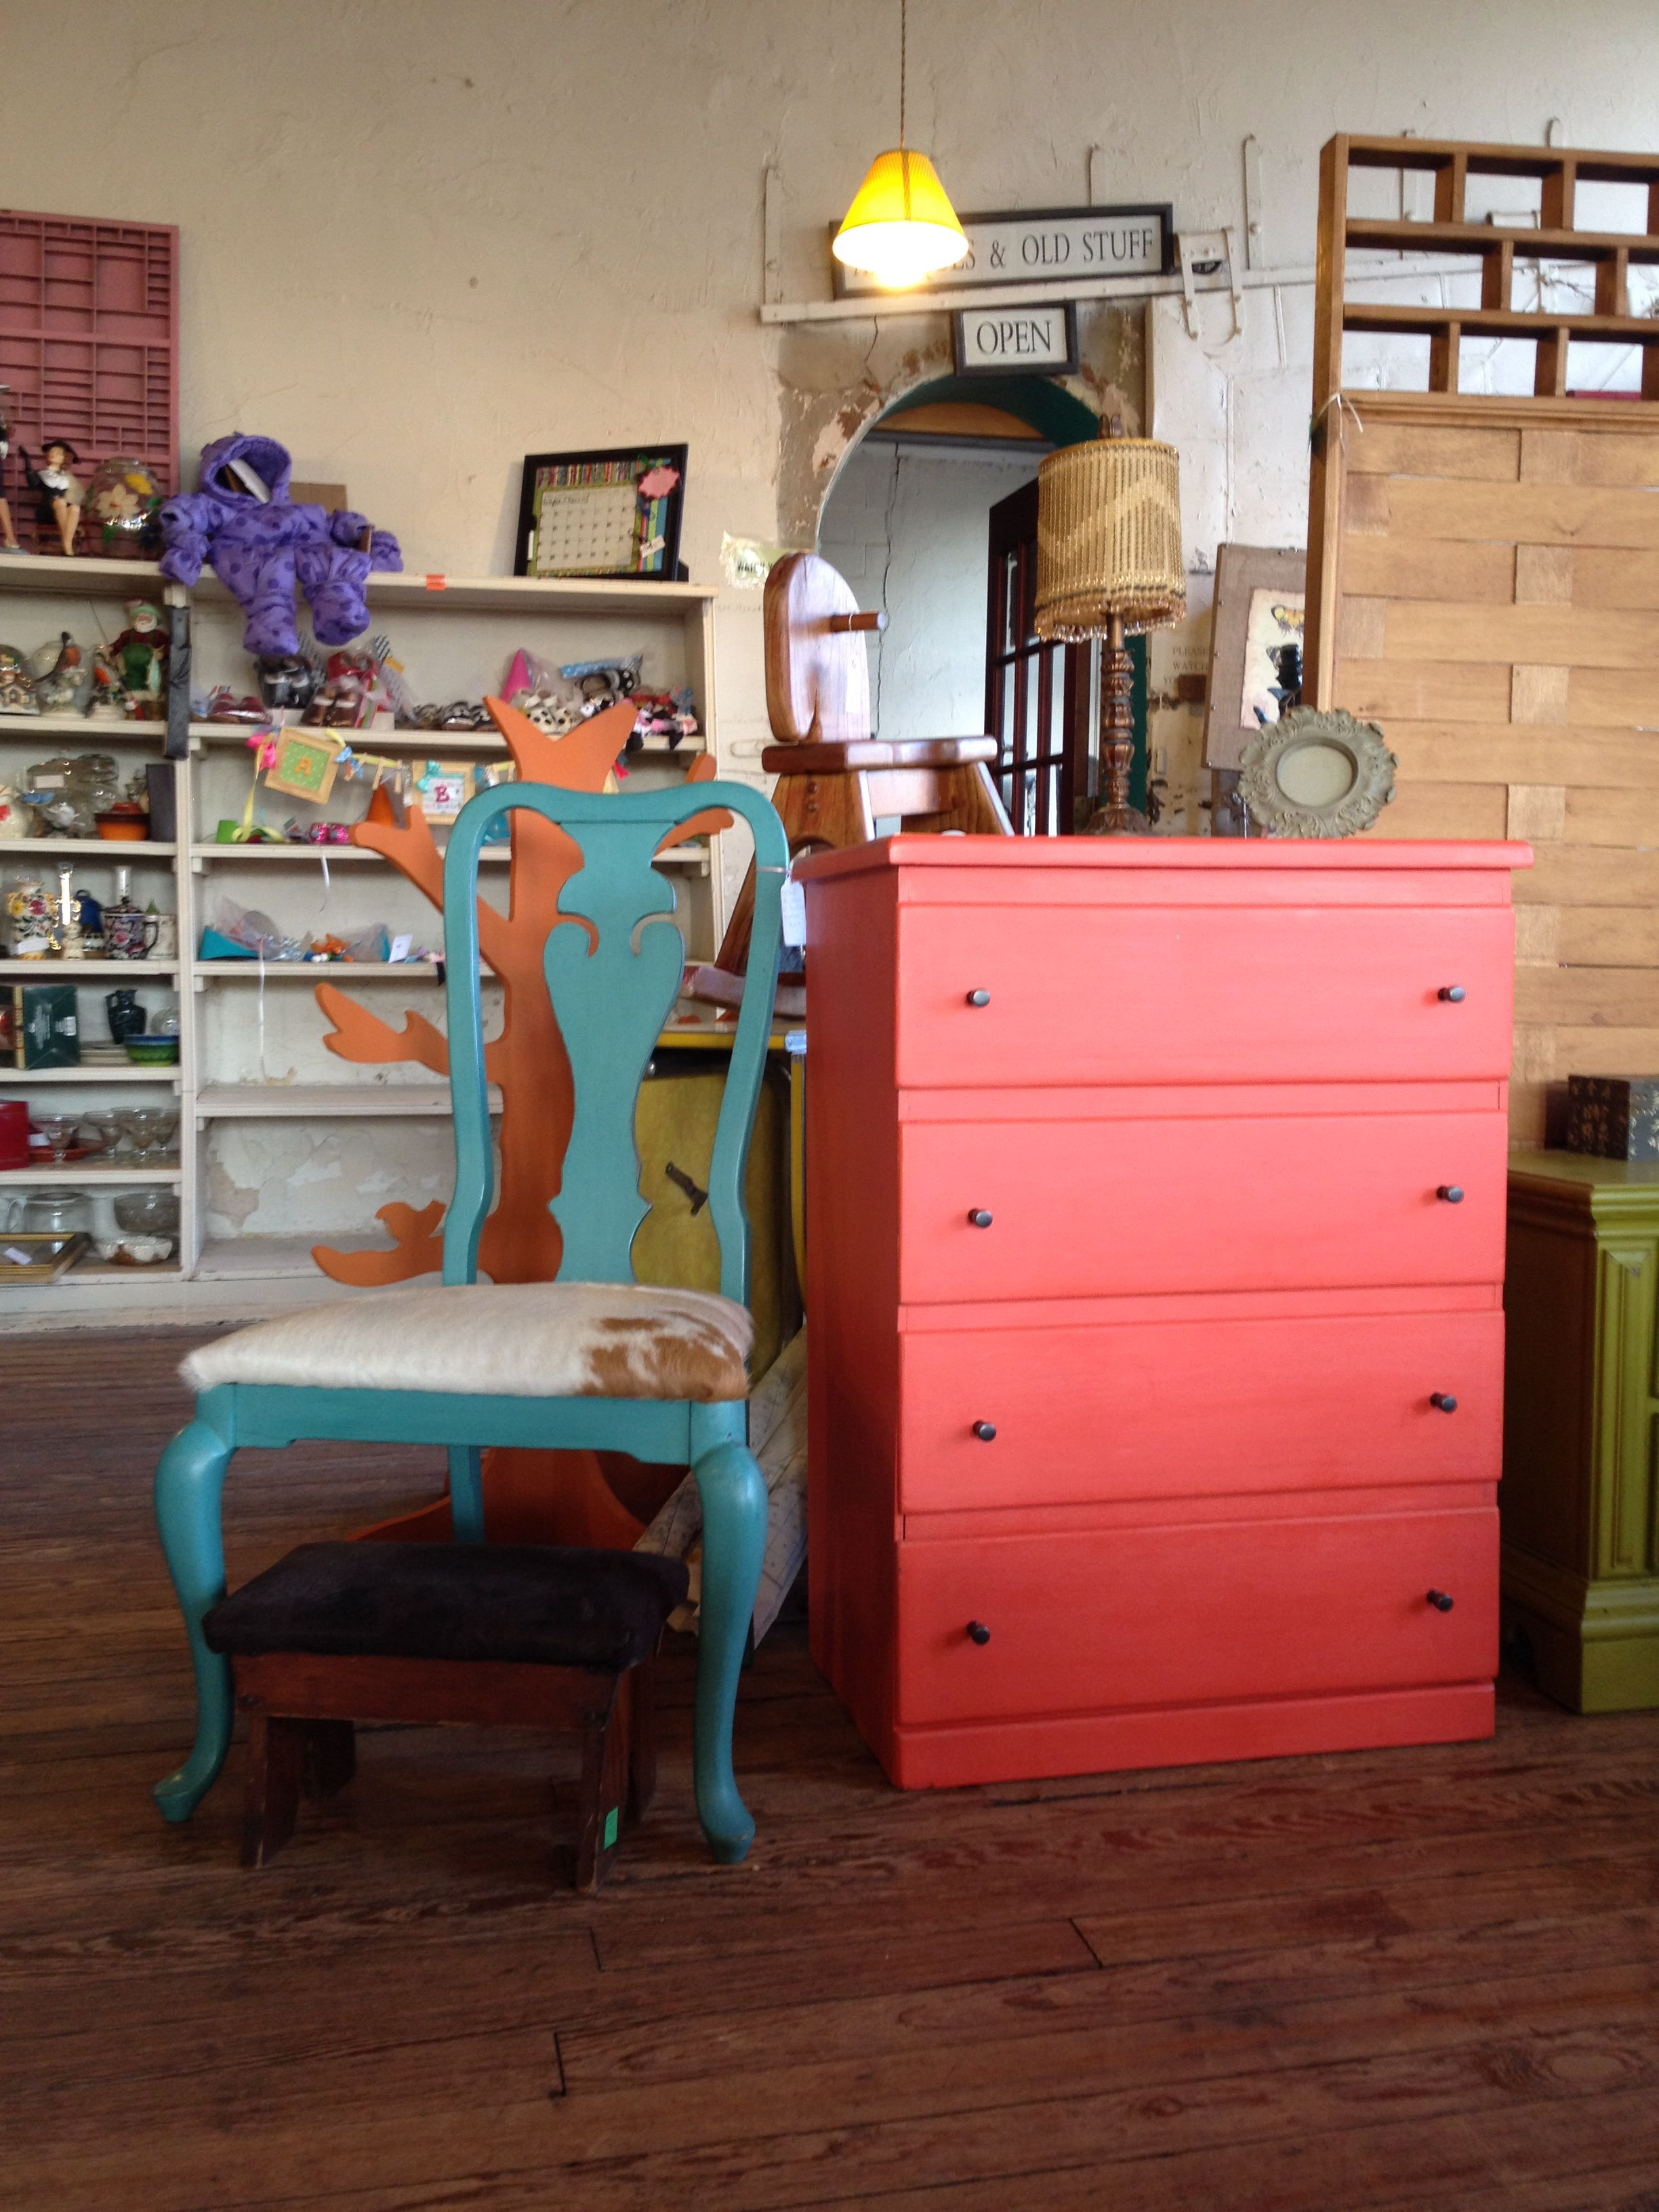 Chest Of Drawers Done In American Paint Company Coral Reef Americanpaintcompany Apc Oldstore Piedm American Paint Company Paint Companies Bedroom Makeover